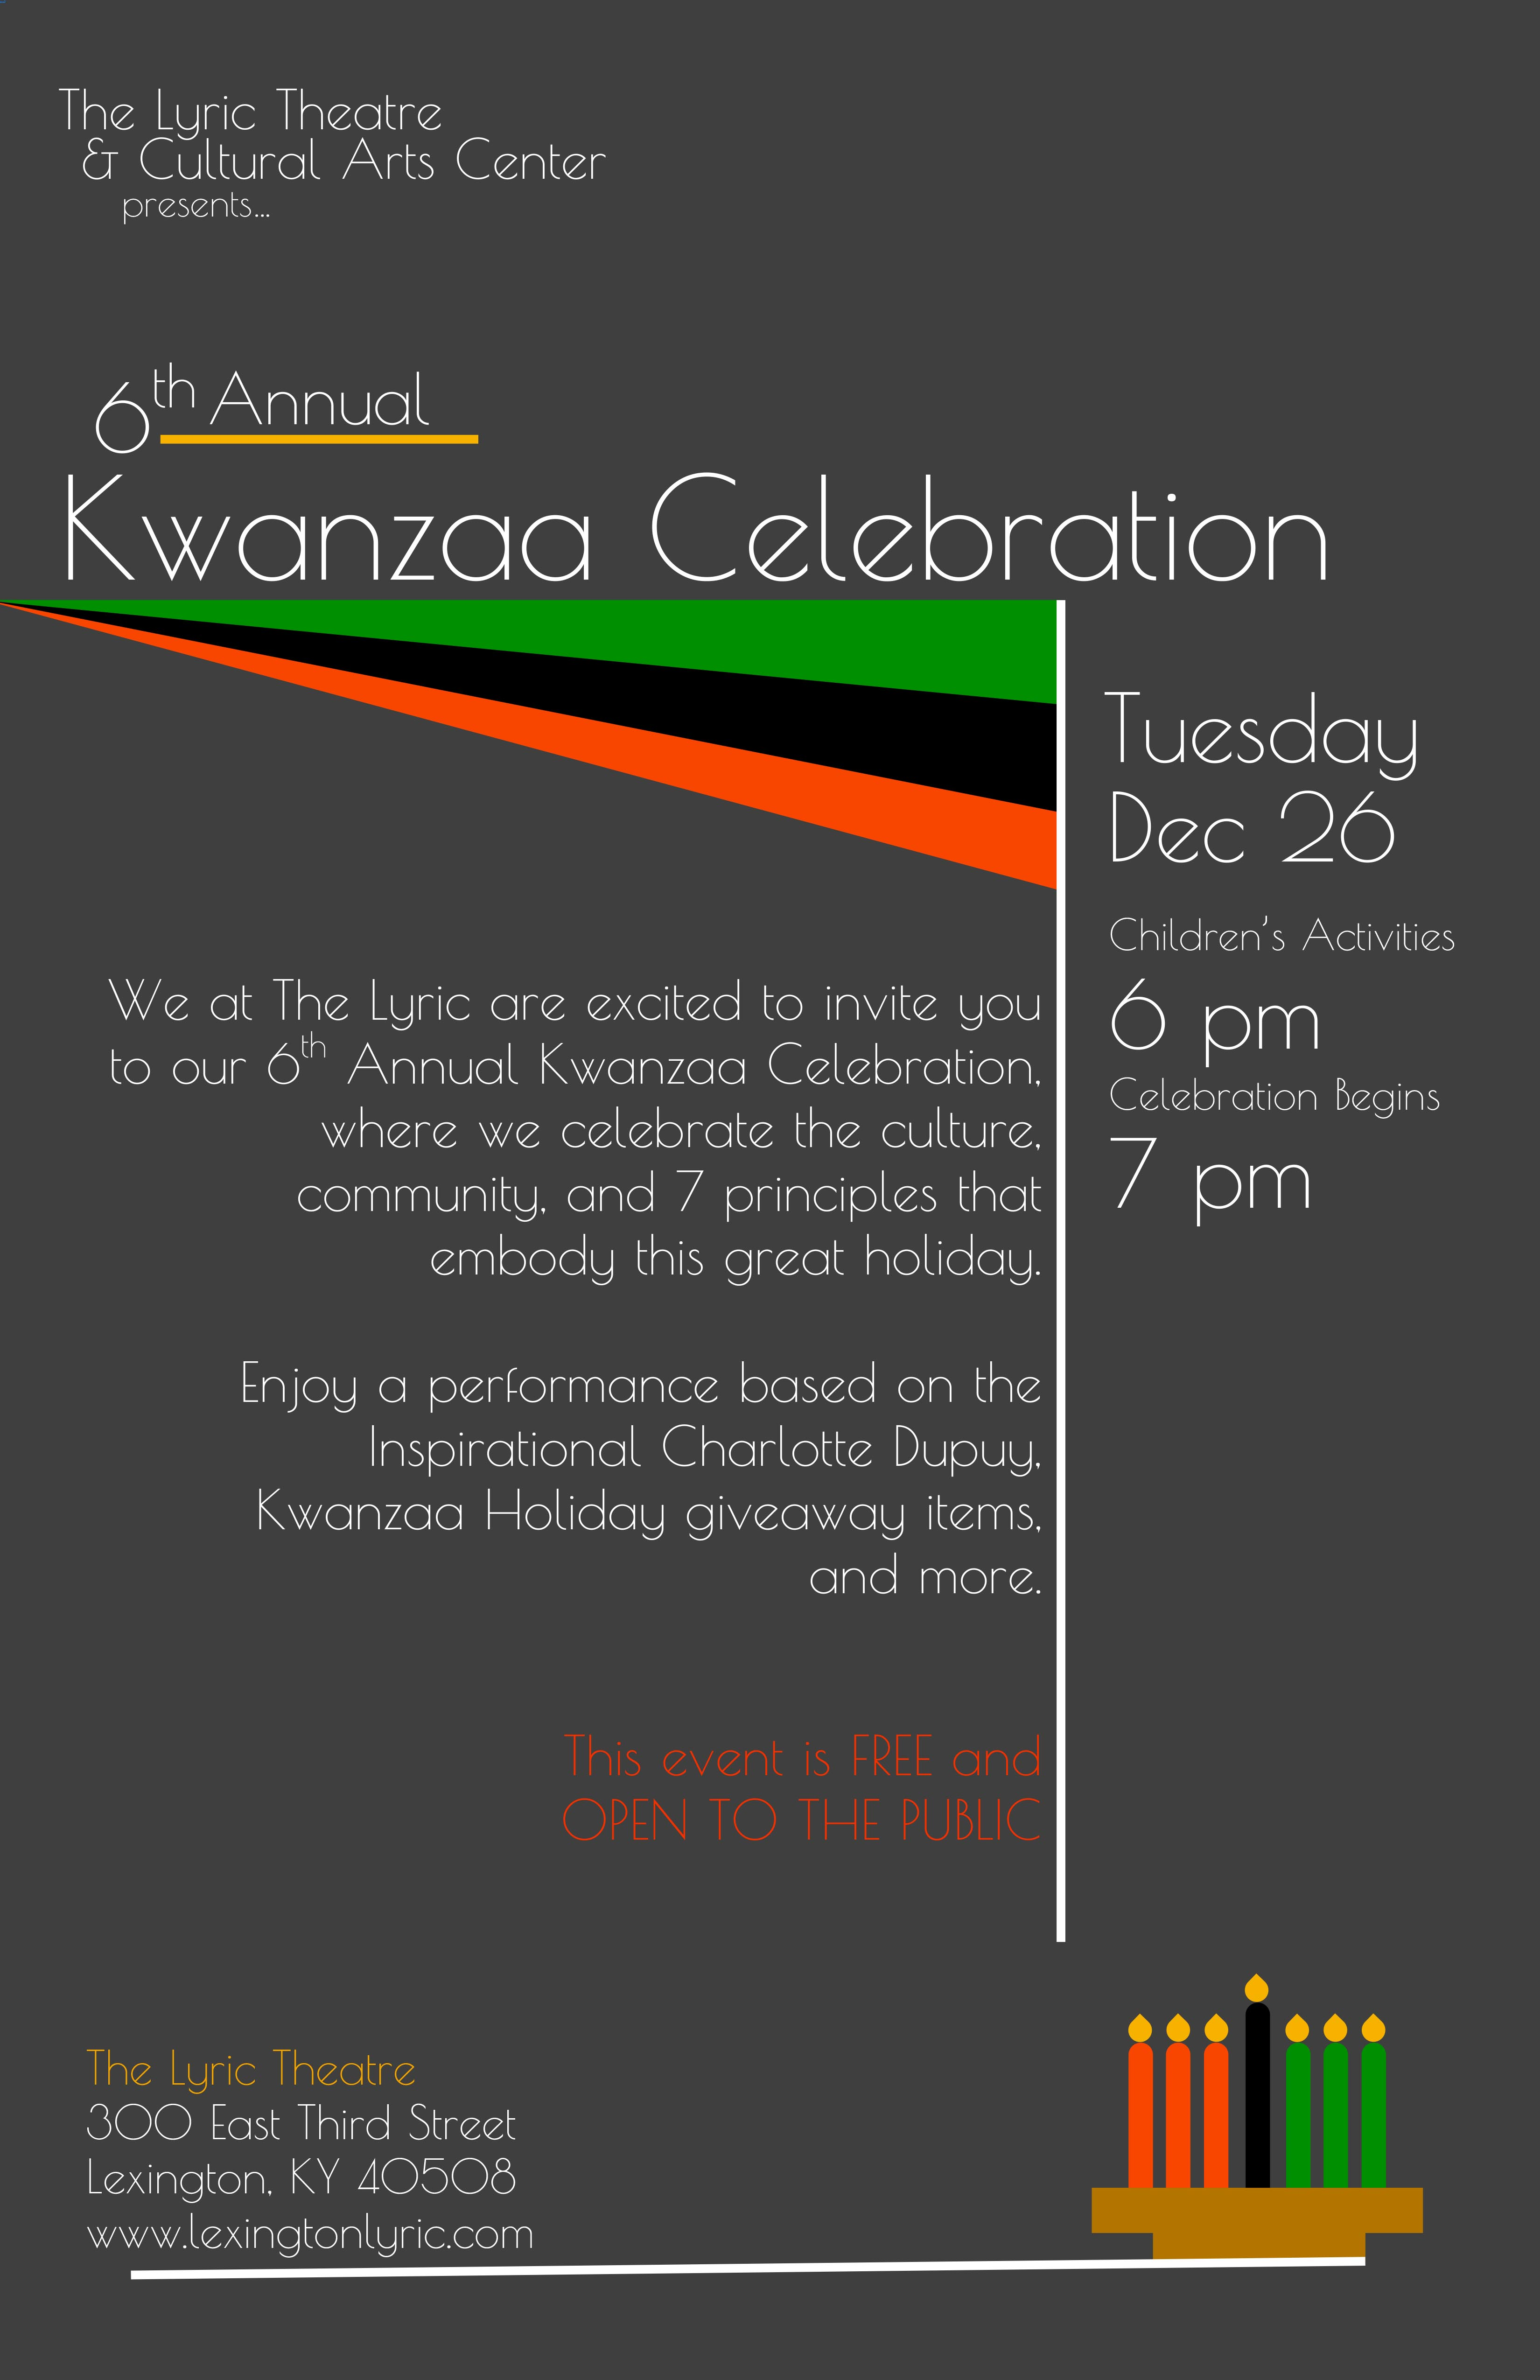 Lyric theatre and cultural arts center we at the lyric are excited to invite you to our 6th annual kwanzaa celebration where we celebrate the culture community and 7 principles that embody stopboris Images